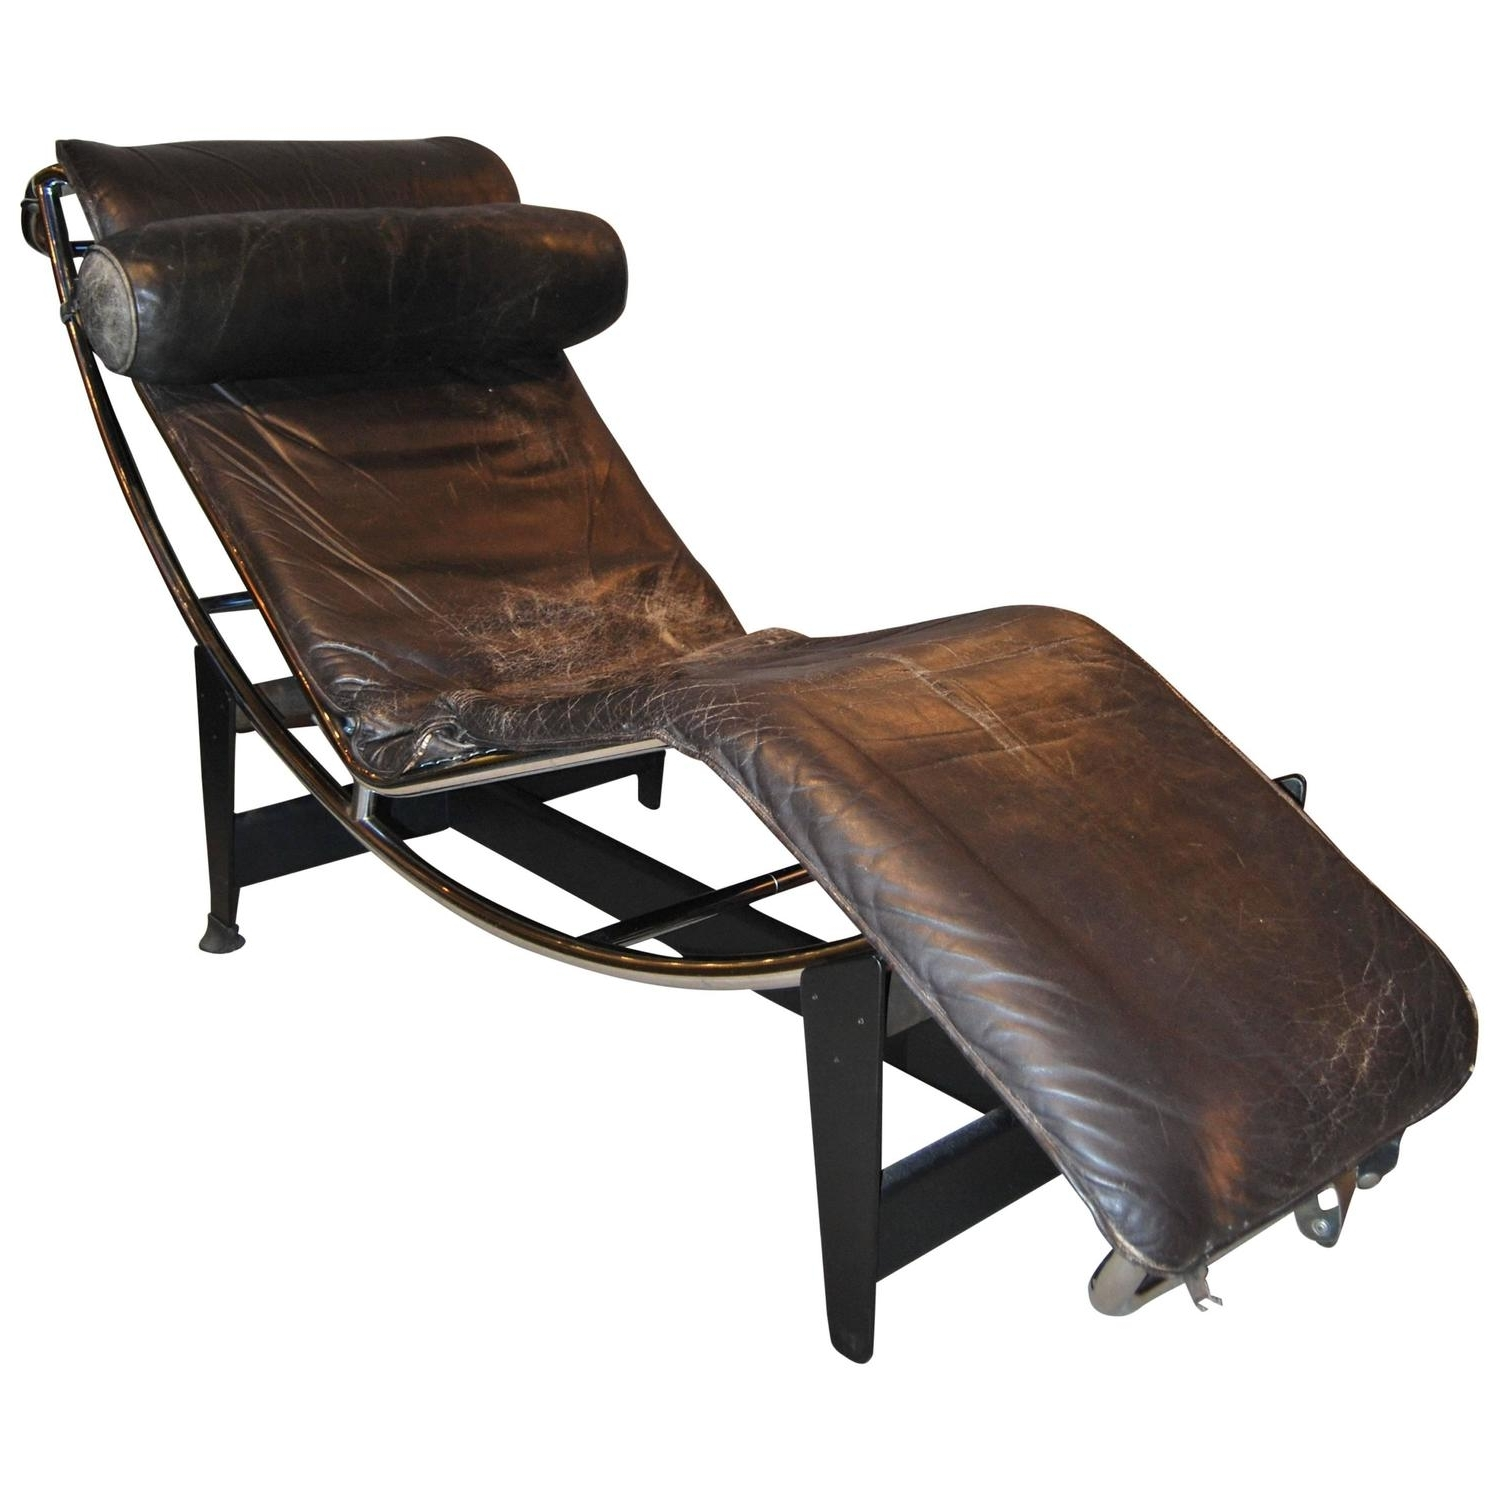 Early Le Corbusier/jeanneret/perriand Lc4 Chaise Lounge For Sale In Most Up To Date Lc4 Chaise Lounges (View 5 of 15)